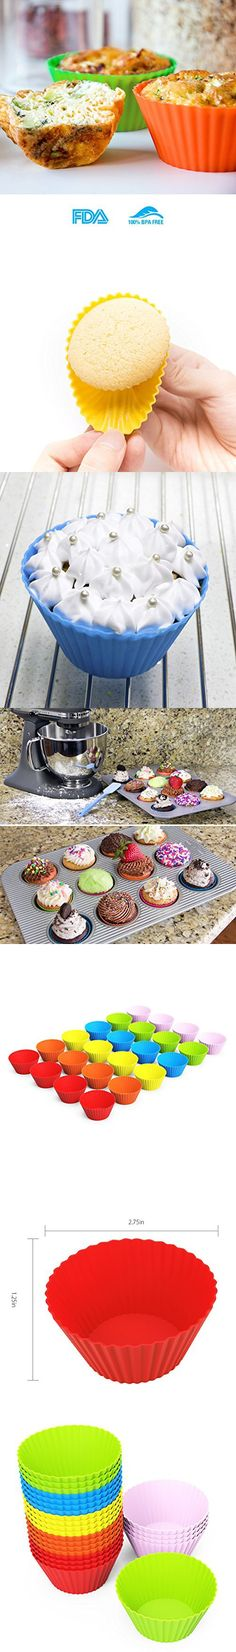 EXVI 24 Piece Silicone Baking Cups Cupcake Liners Muffin Cupcake Molds Sets - Six Vibrant Colors Muffin Cupcake, Cupcake Mold, Cupcake Liners, Baking Cups, Vibrant Colors, Vivid Colors